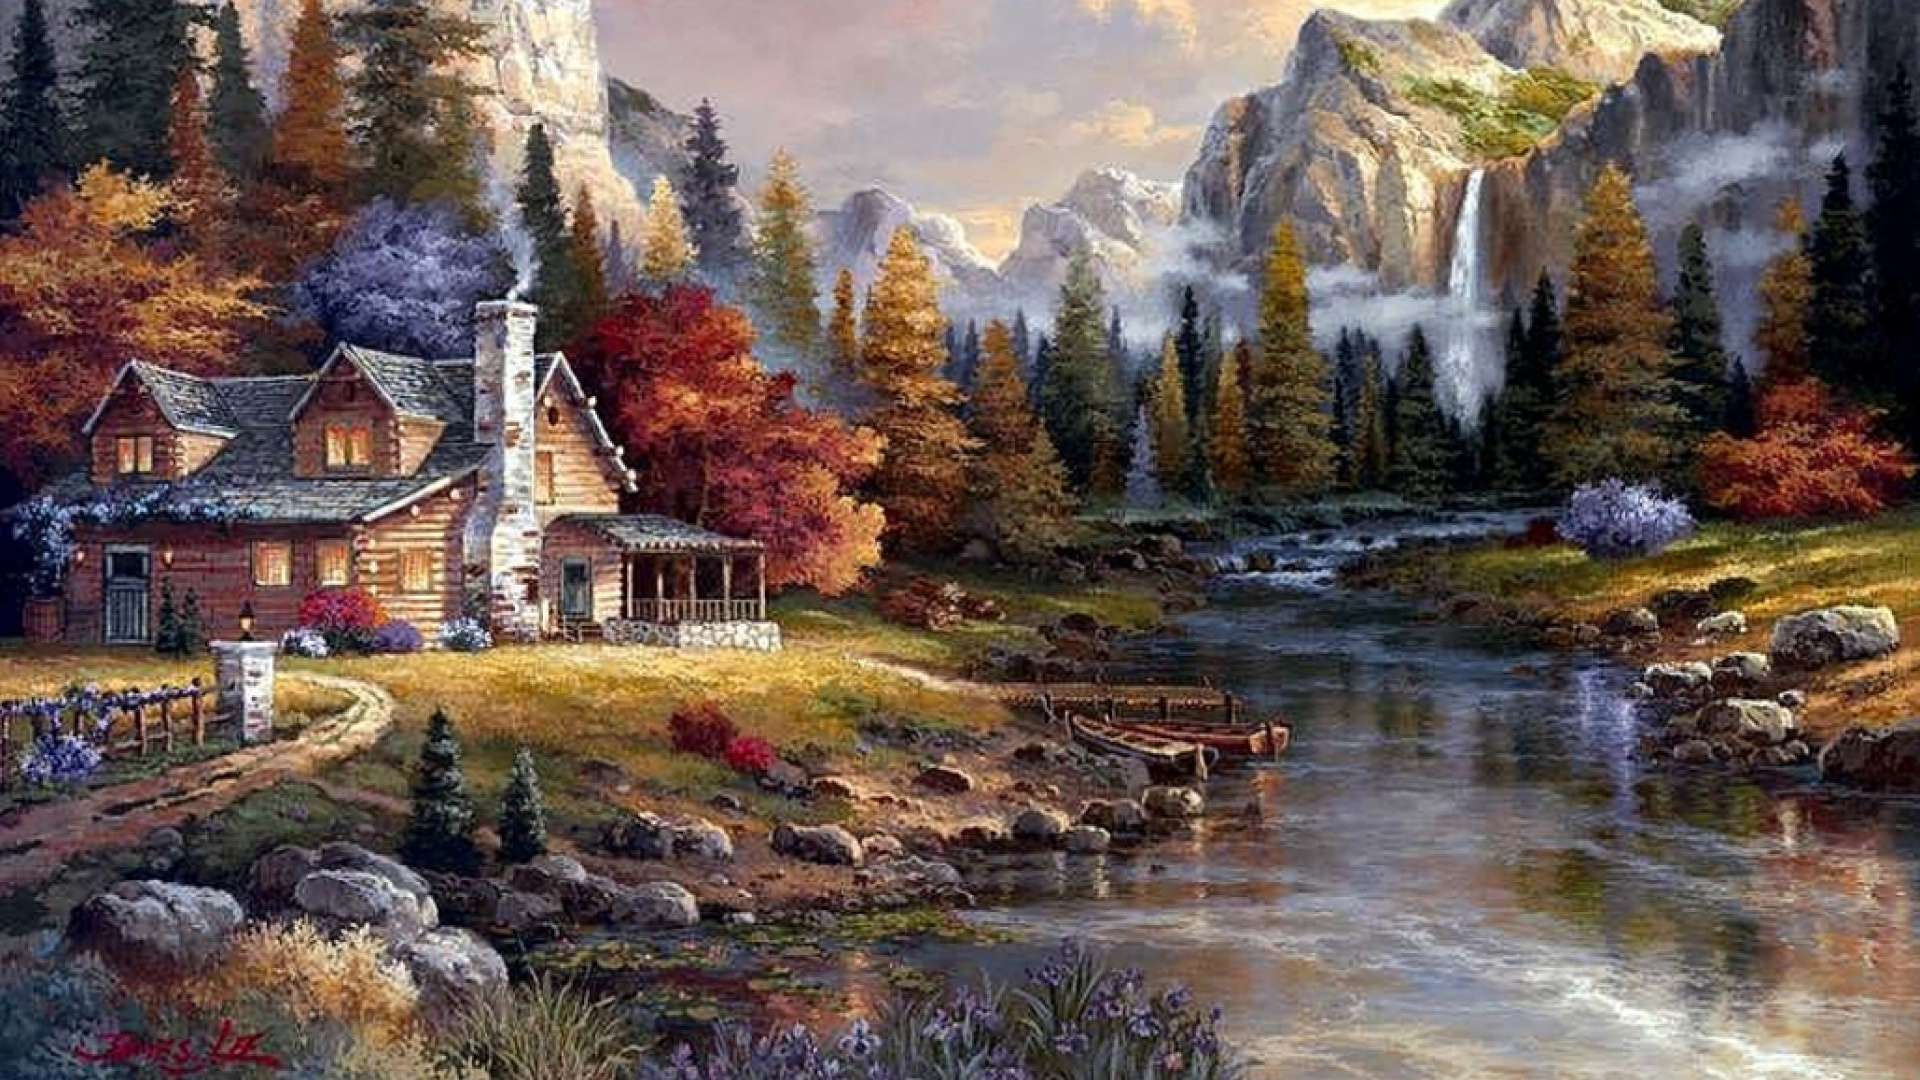 1920x1080 Holiday Cottage Pretty Scenery Desktop PC And Mac Wallpaper